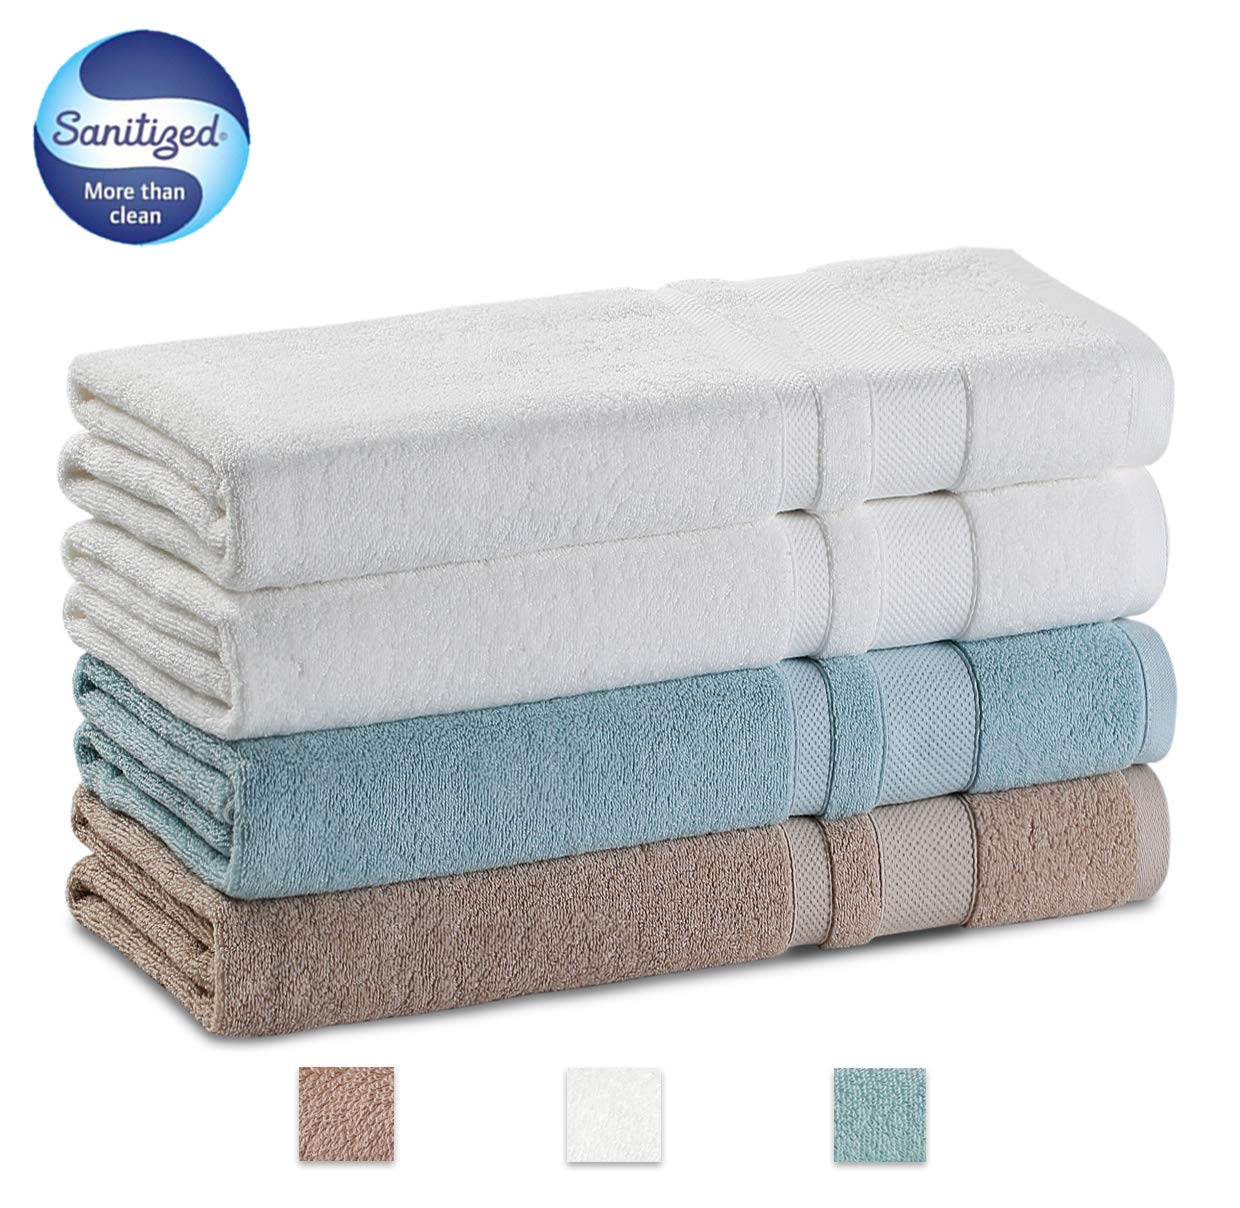 GRACE ORCHID Luxury Family Microfiber Towel Set 4 Piece Bath Towels 56x28 Inch-100% Long Staple Cotton Super Soft, Machine Washable, Ultra Absorbent and Hotel spa Collection(White, Light Blue,Brown)